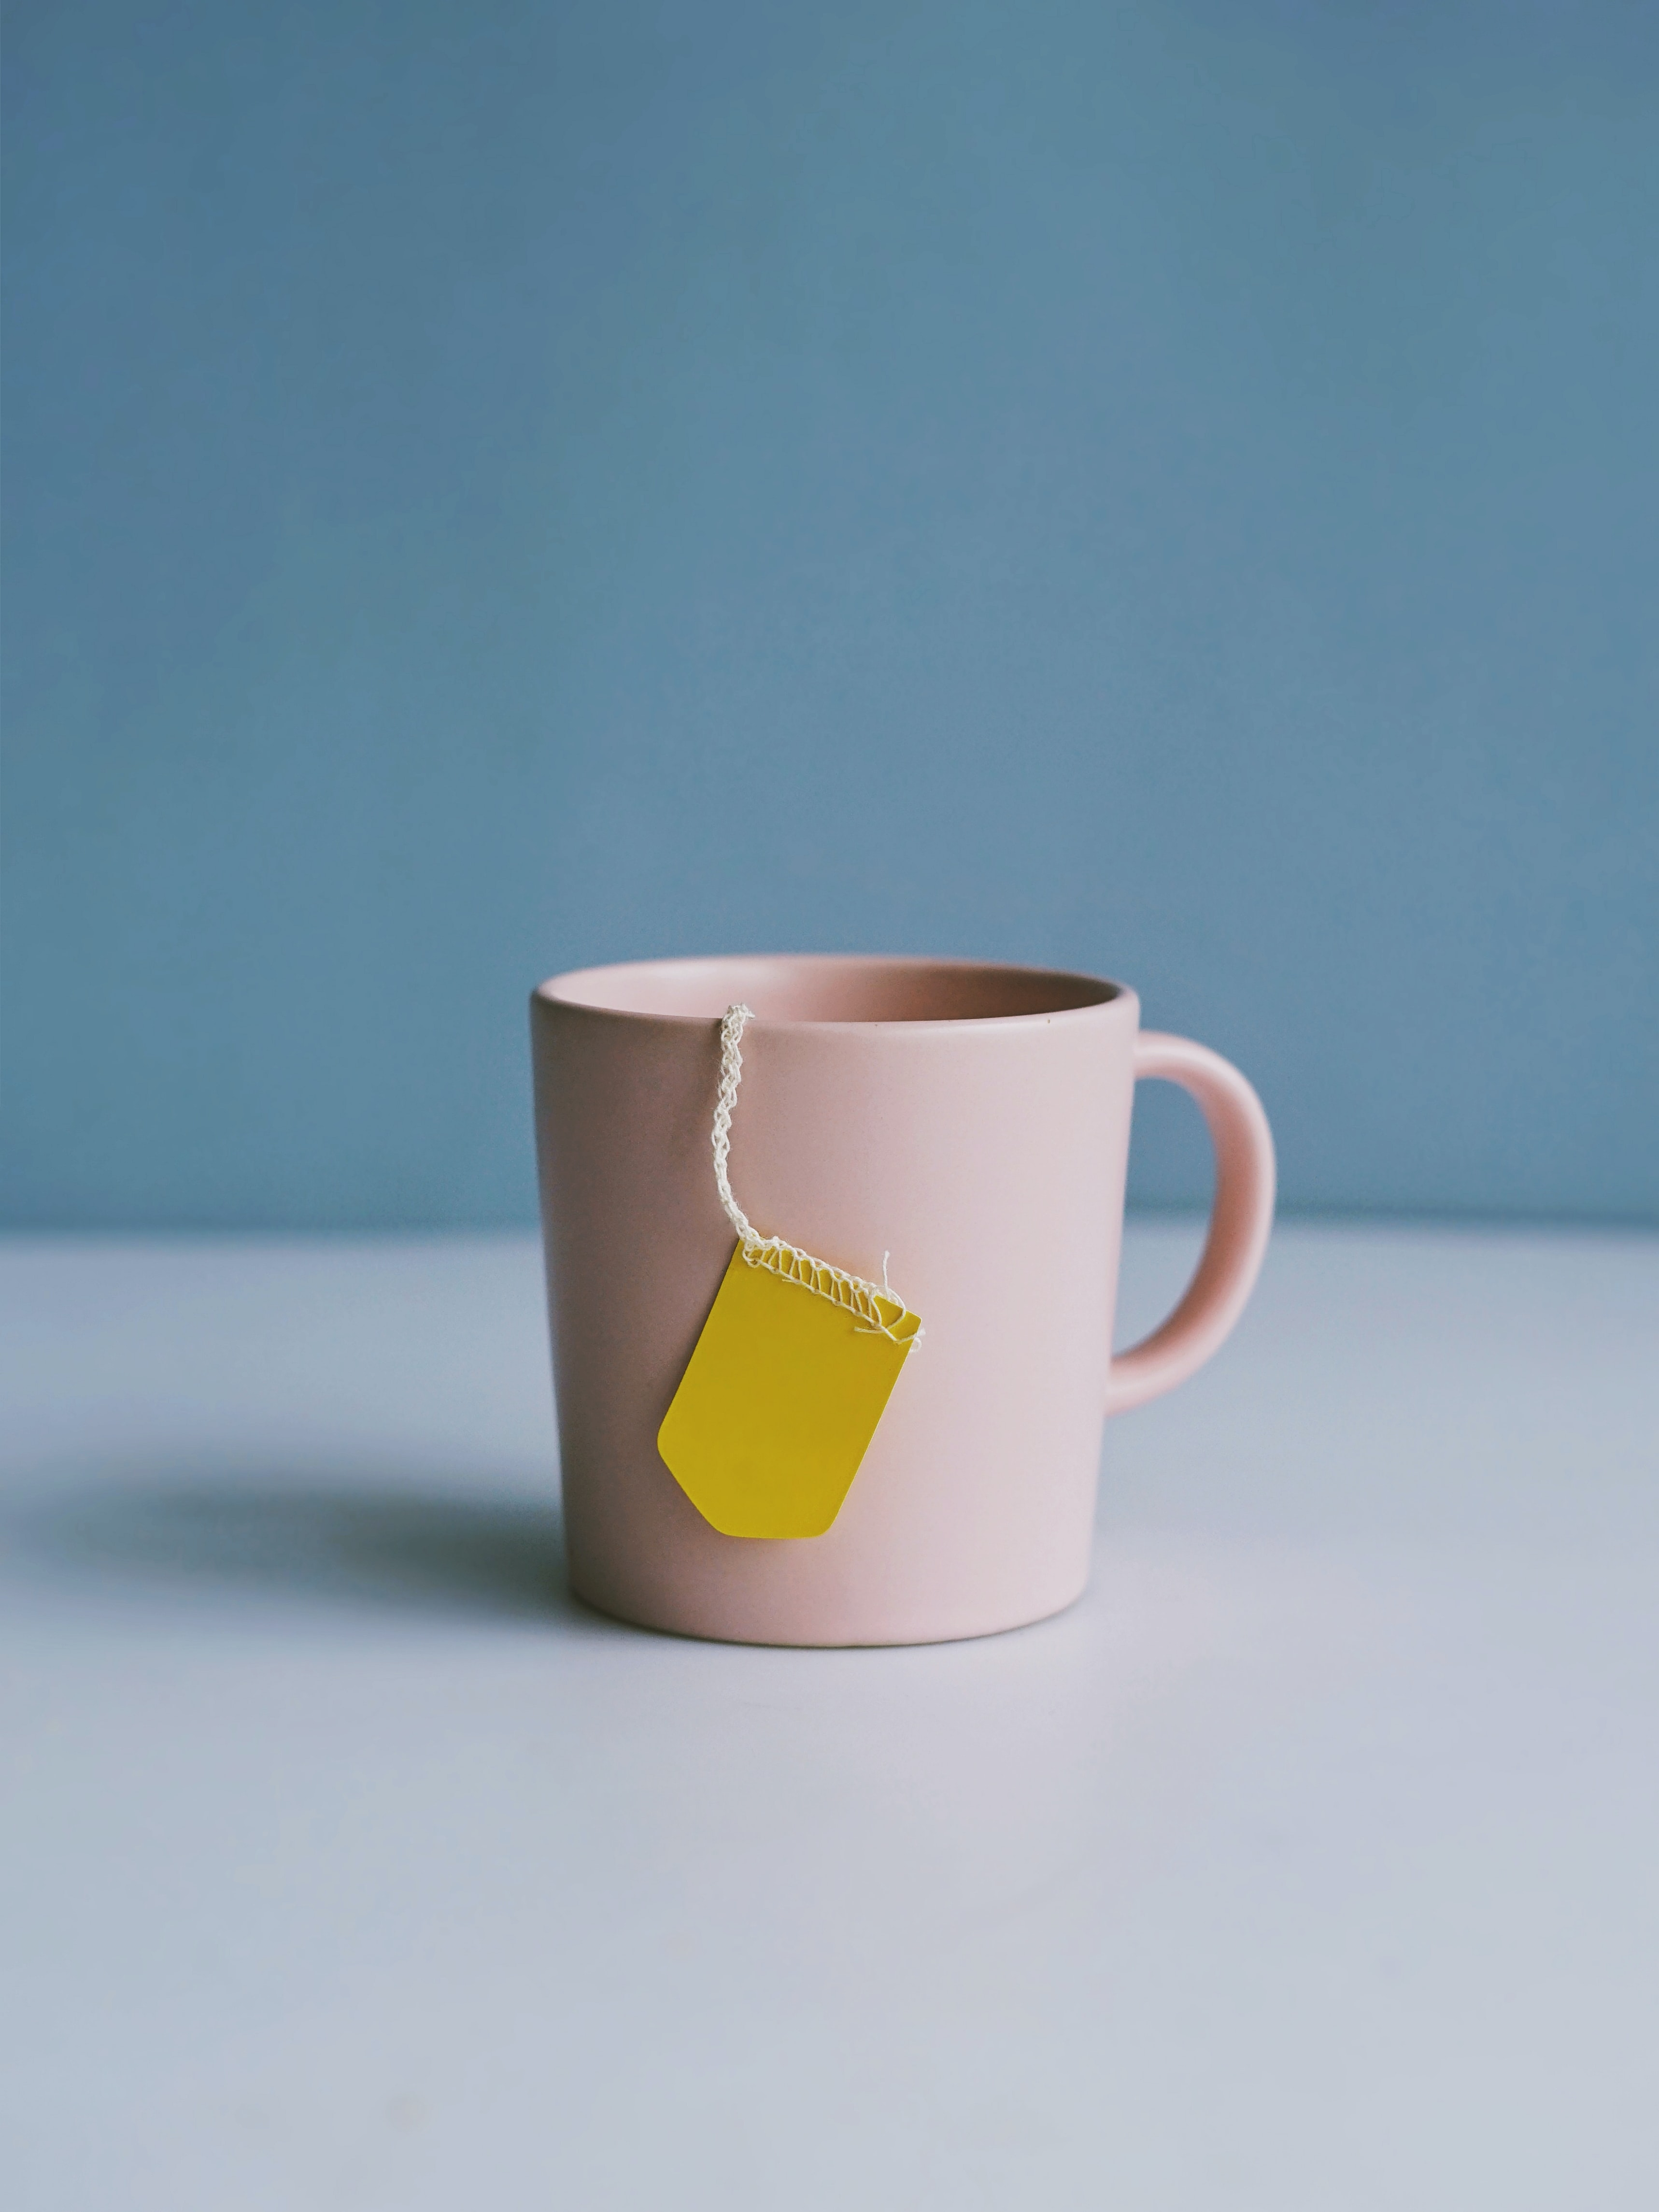 white ceramic mug on white surface